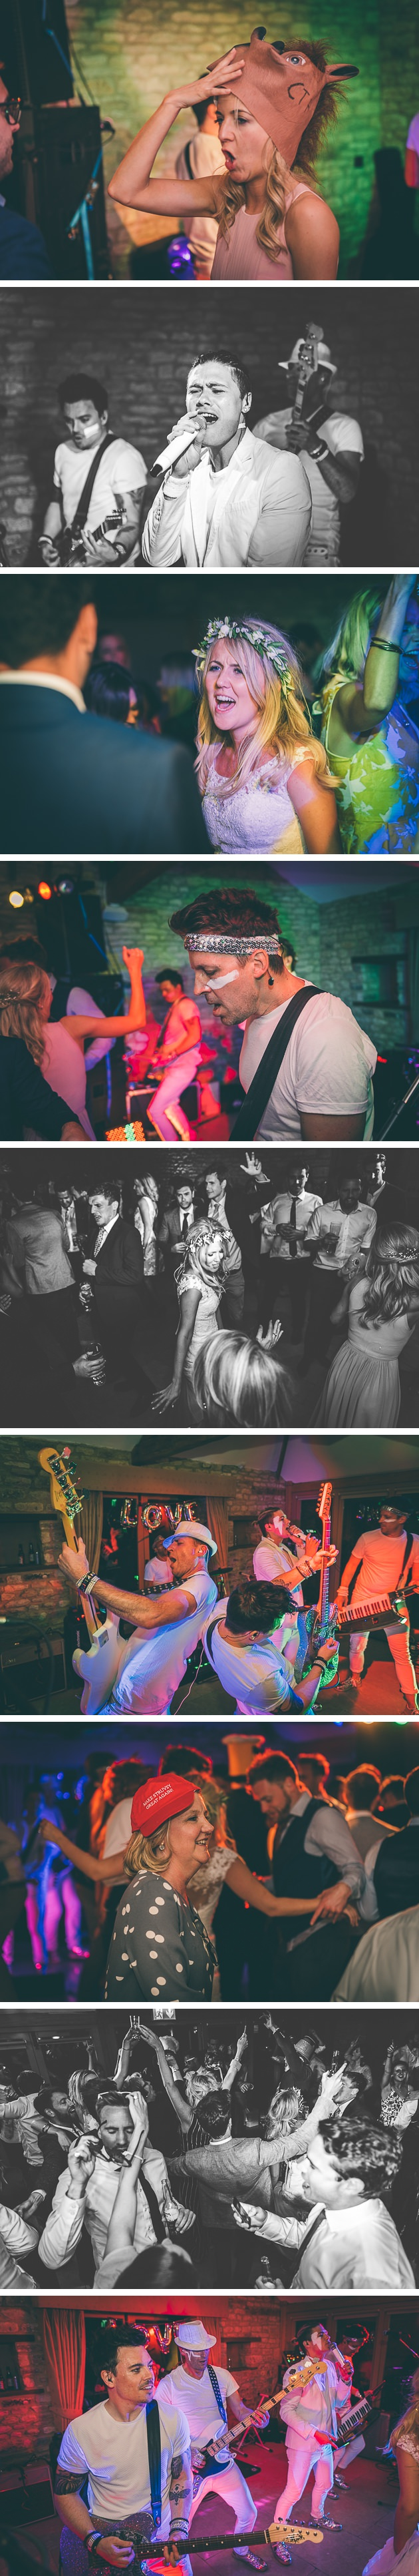 Caswell House Wedding Band